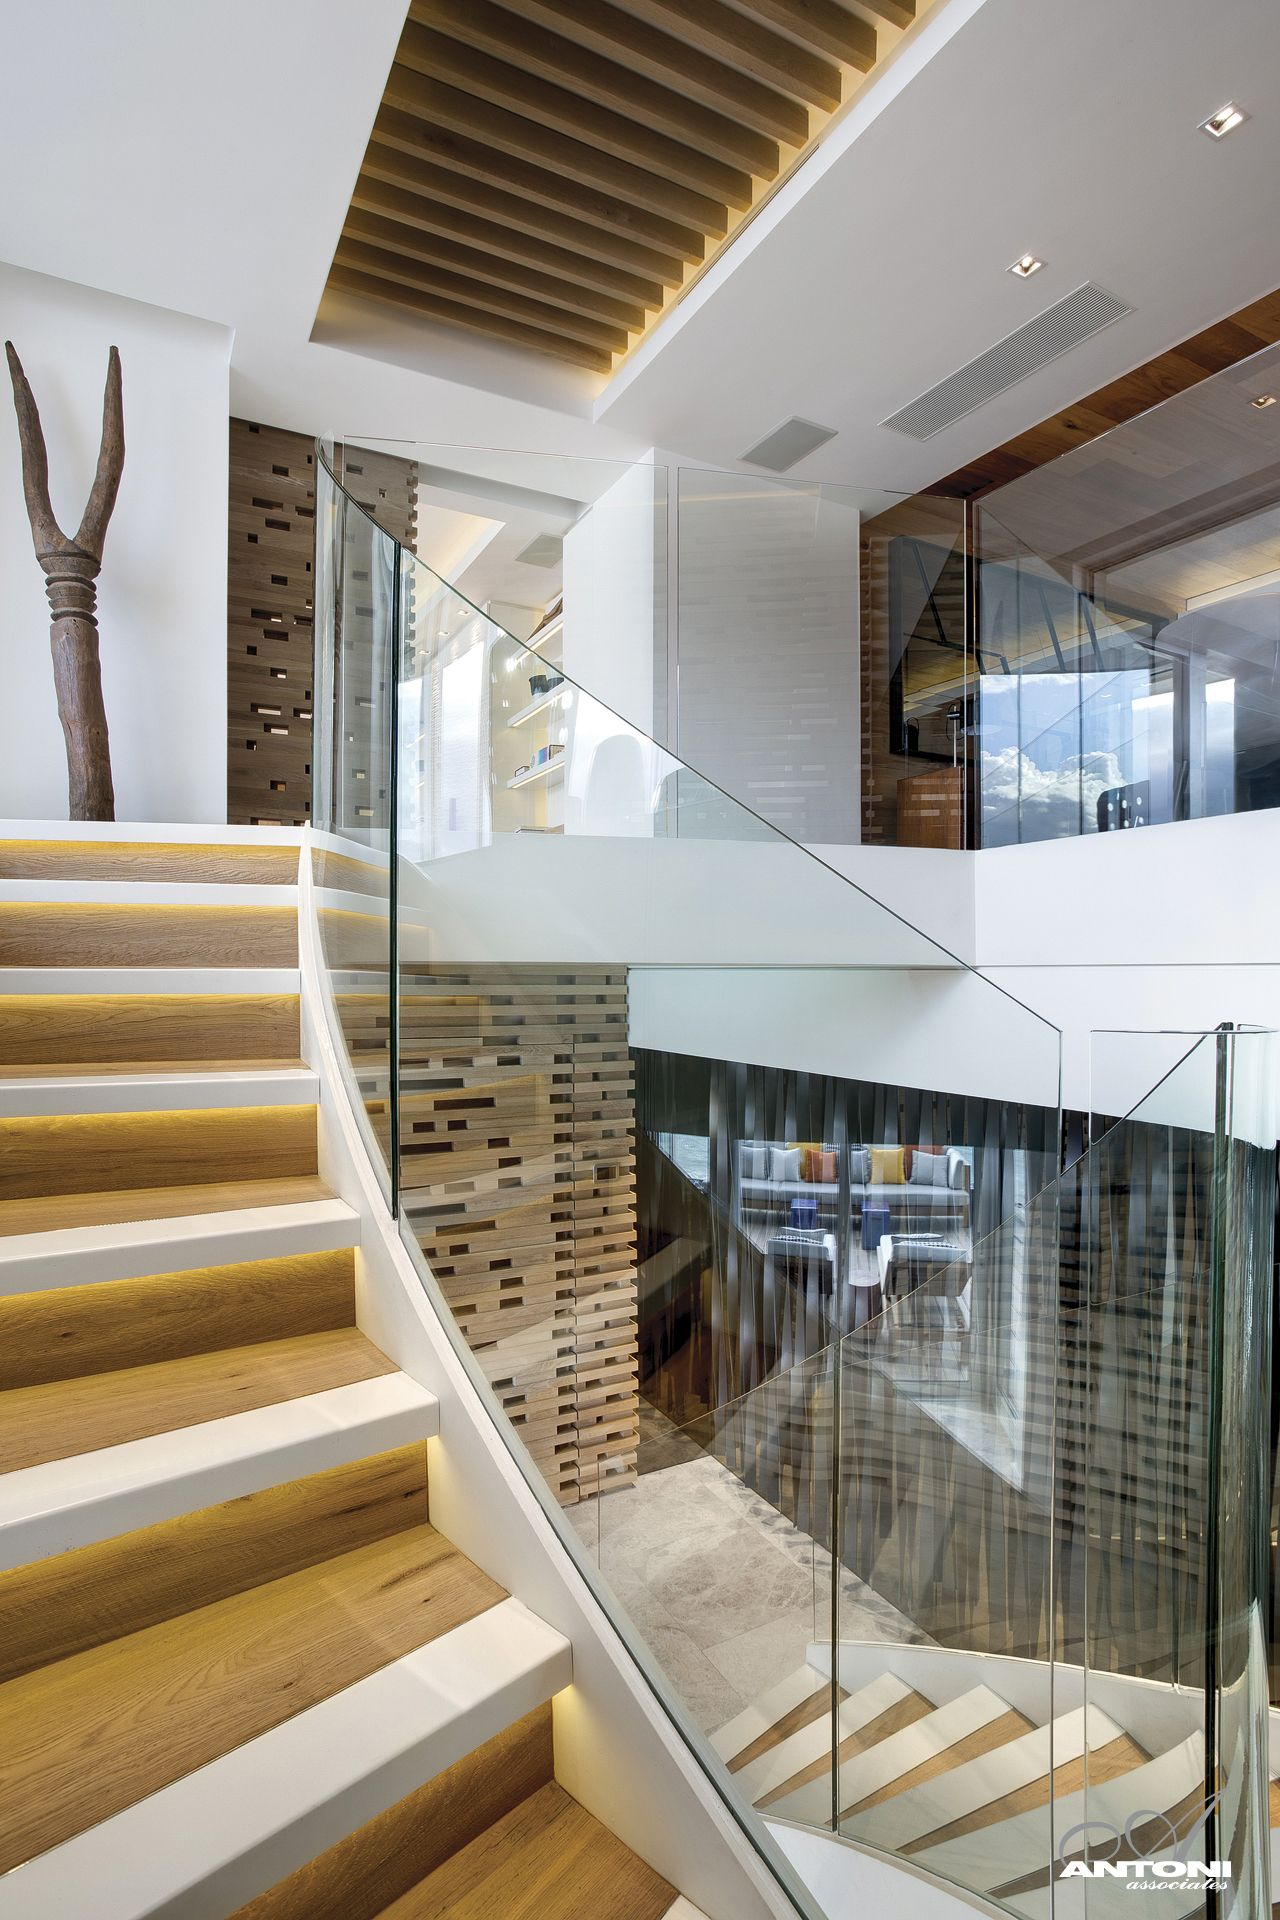 Staircase With Lighting Under Tread Nosing Clifton View - Antoni